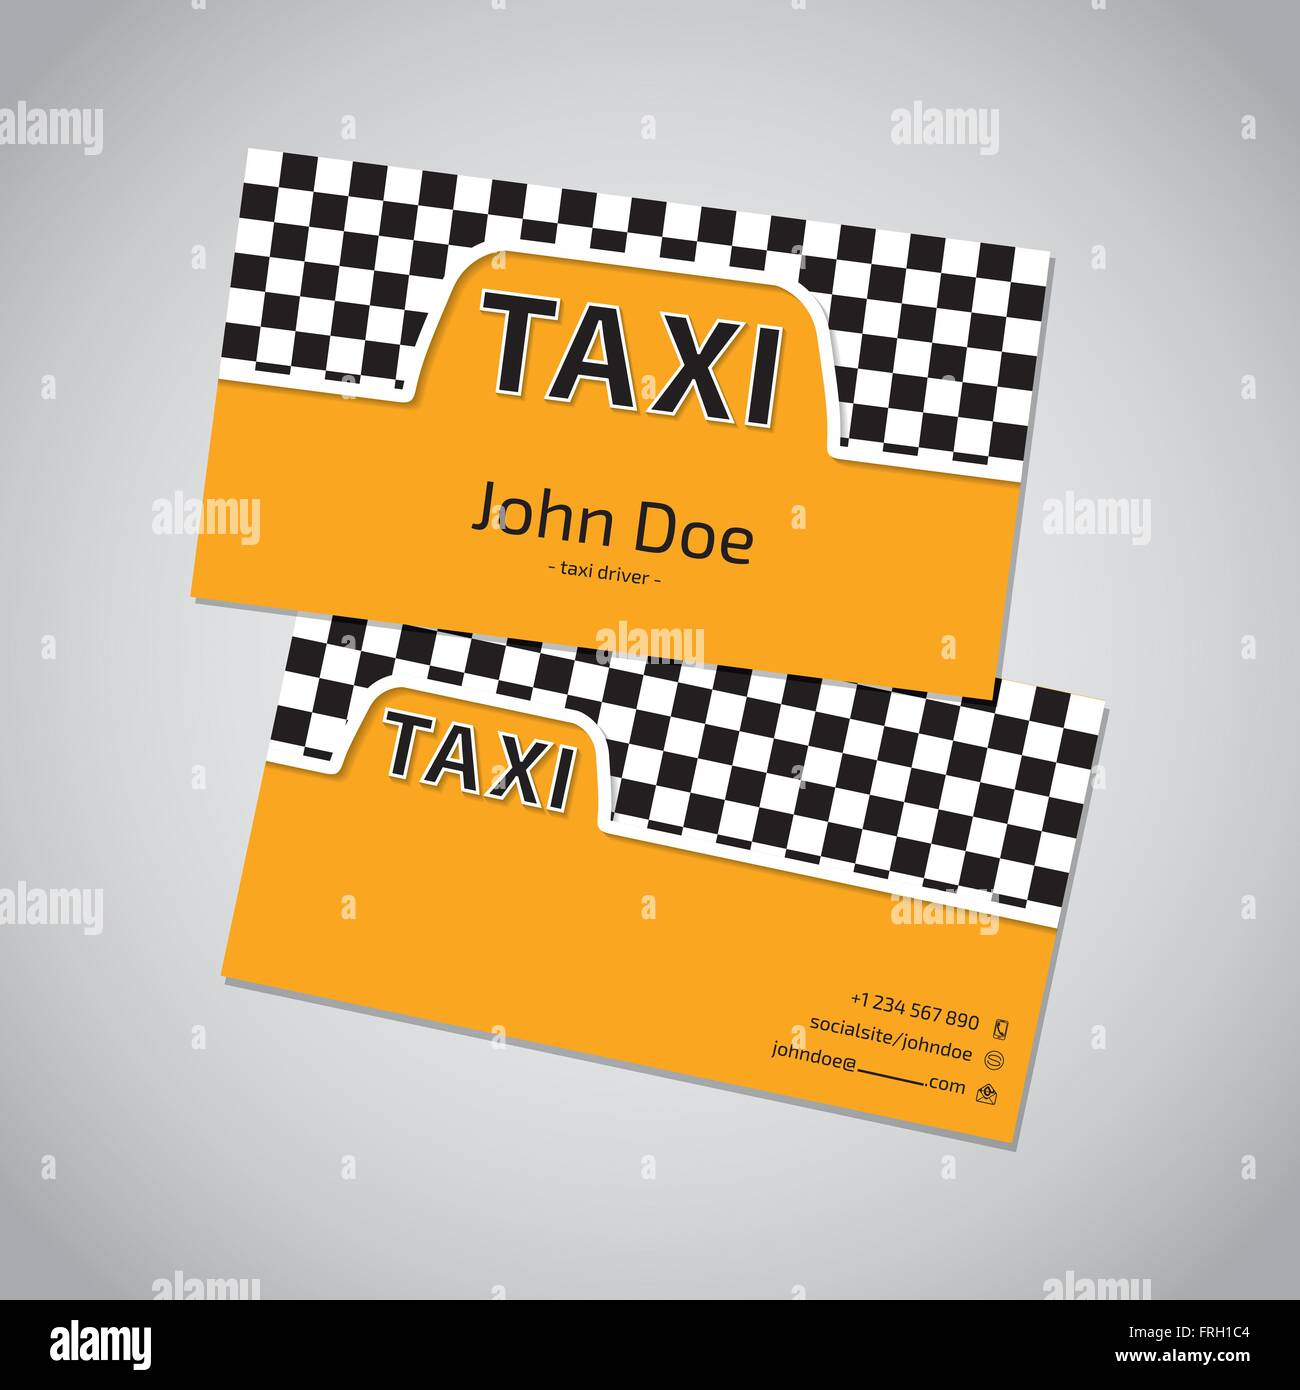 Taxi business card template design with cab symbol stock vector art taxi business card template design with cab symbol colourmoves